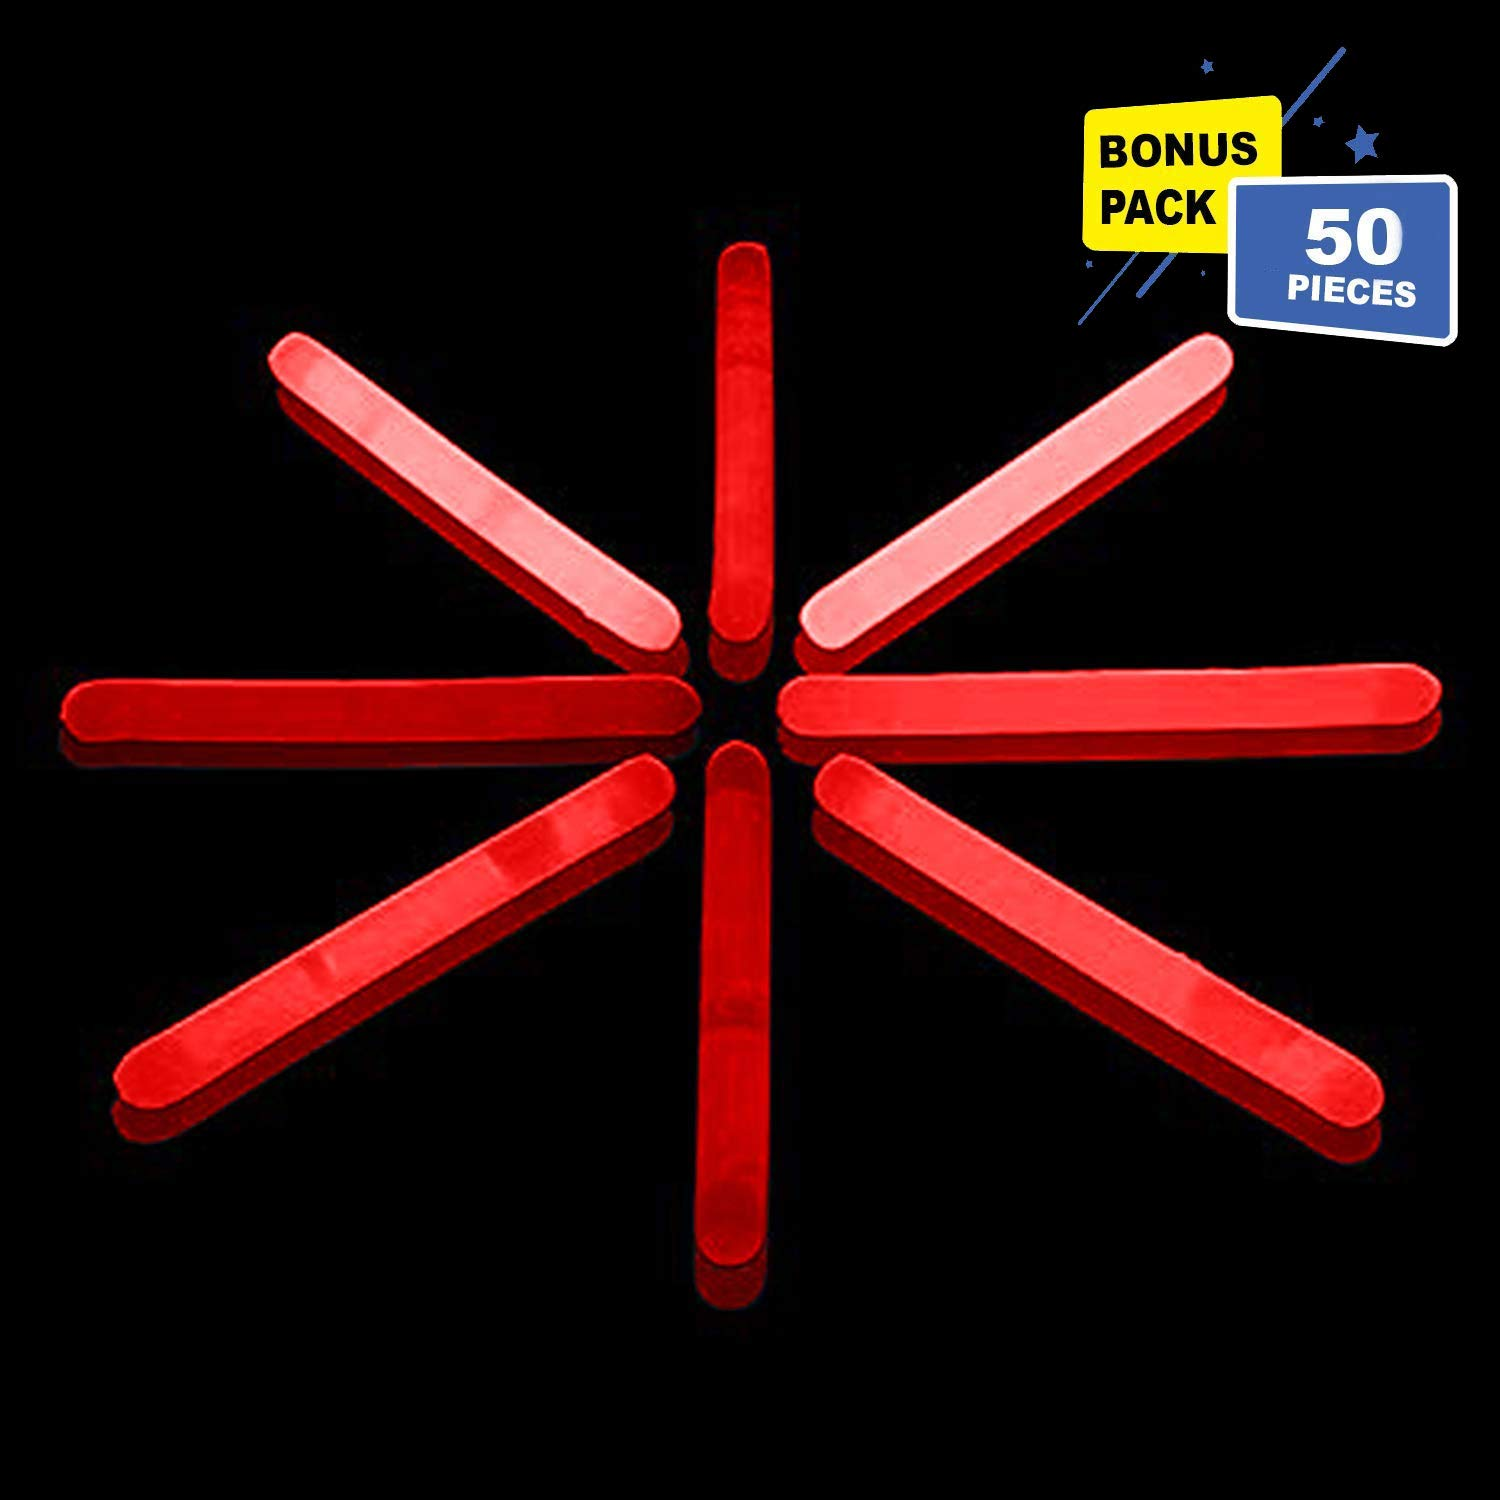 Lumistick 1.5 Inch Fishing Glow Sticks | Bright Color Snap Lights Glowsticks | Neon Mini Light for Swimming | Glow in The Dark Camping Night Party Favor Supplies (Red, 50 Glow Sticks)